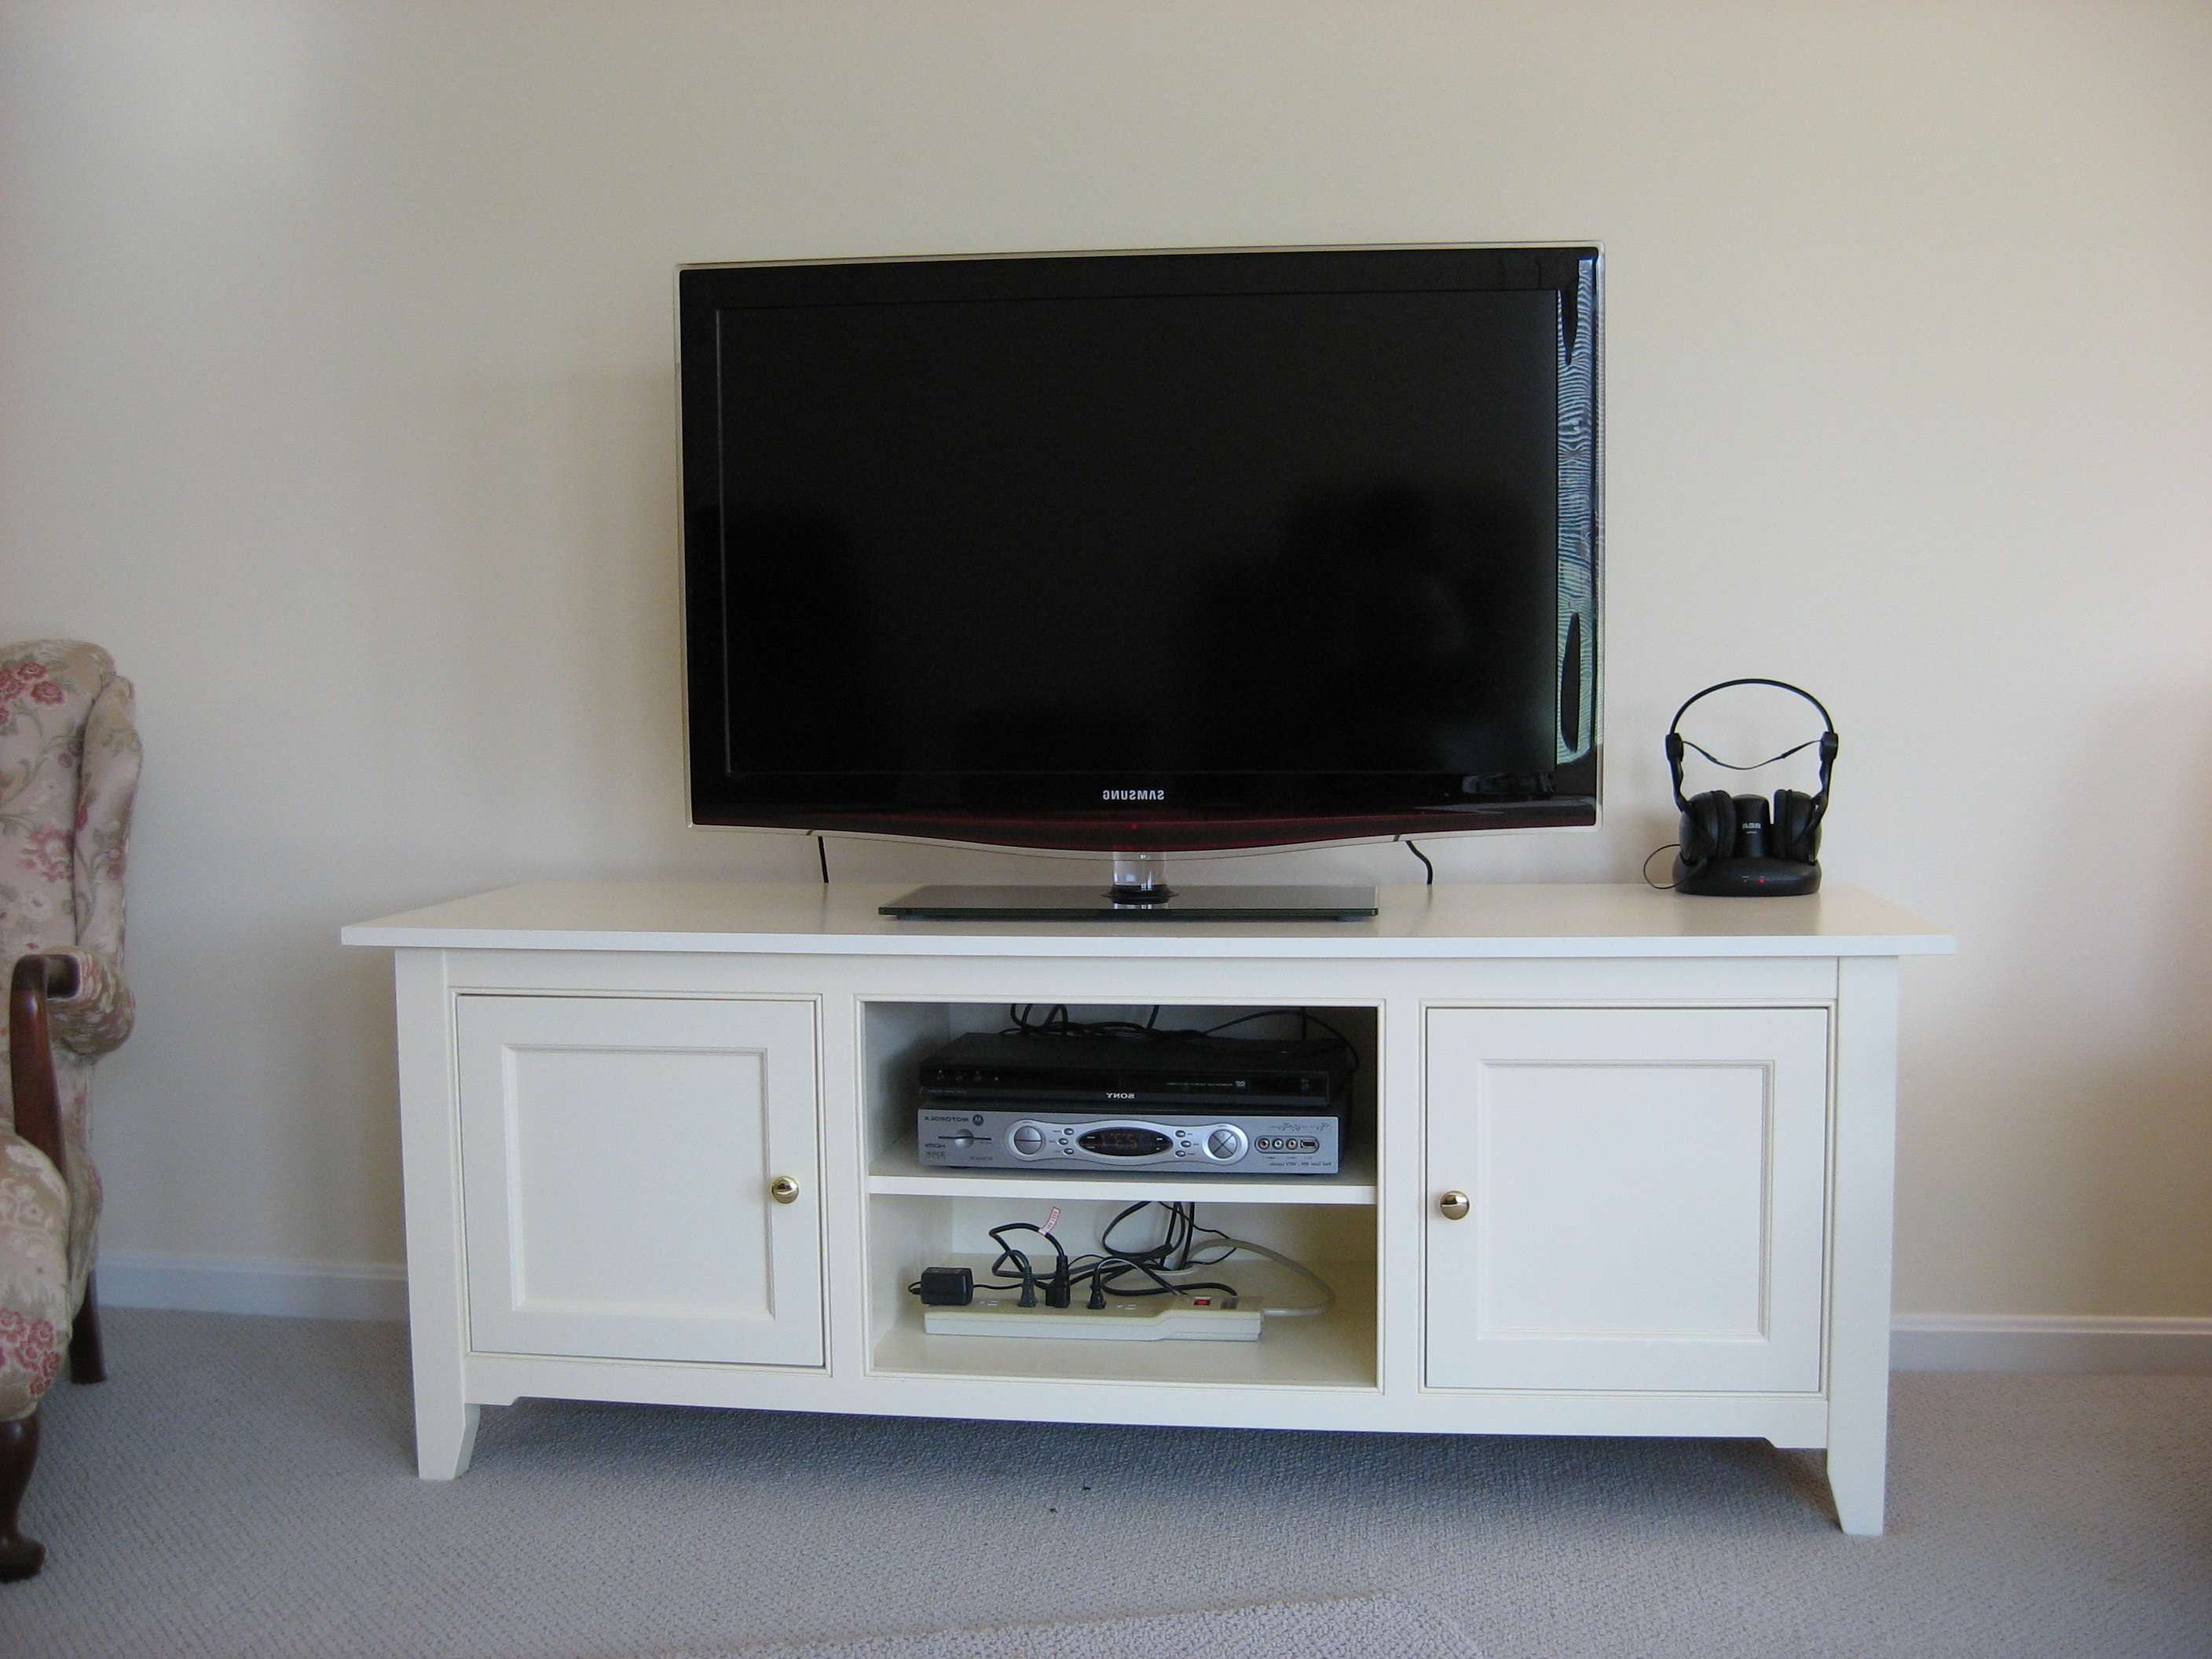 Cuisine: White Tv Stands For Flat Screens Distressed Broyhill Regarding White Tv Stands For Flat Screens (Gallery 11 of 20)